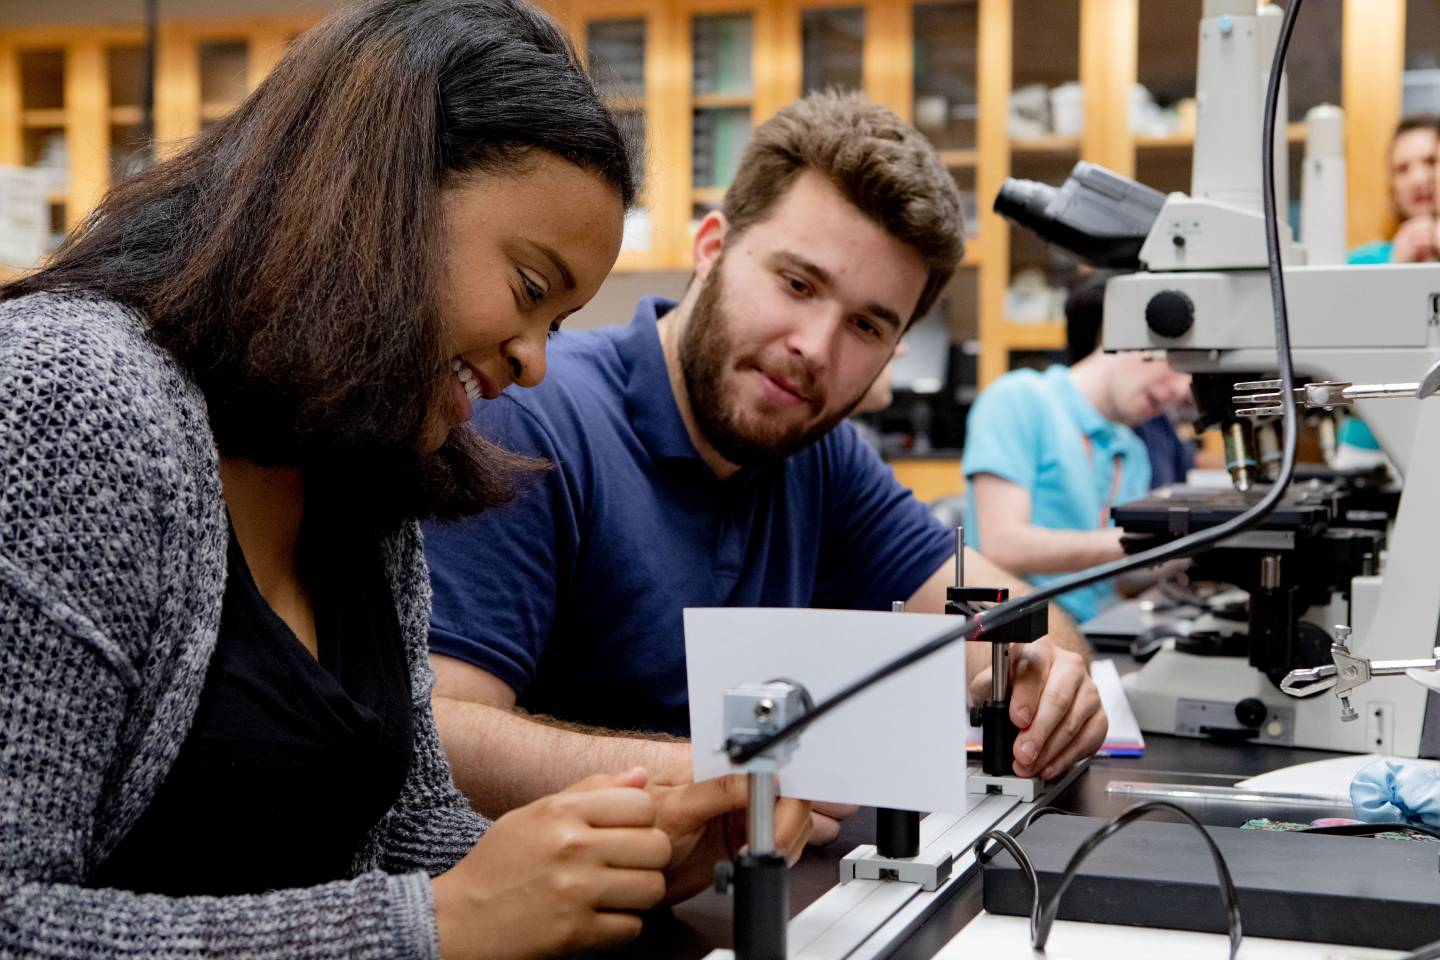 'Physics of Life' summer school brings students to Princeton for biophysics explorations